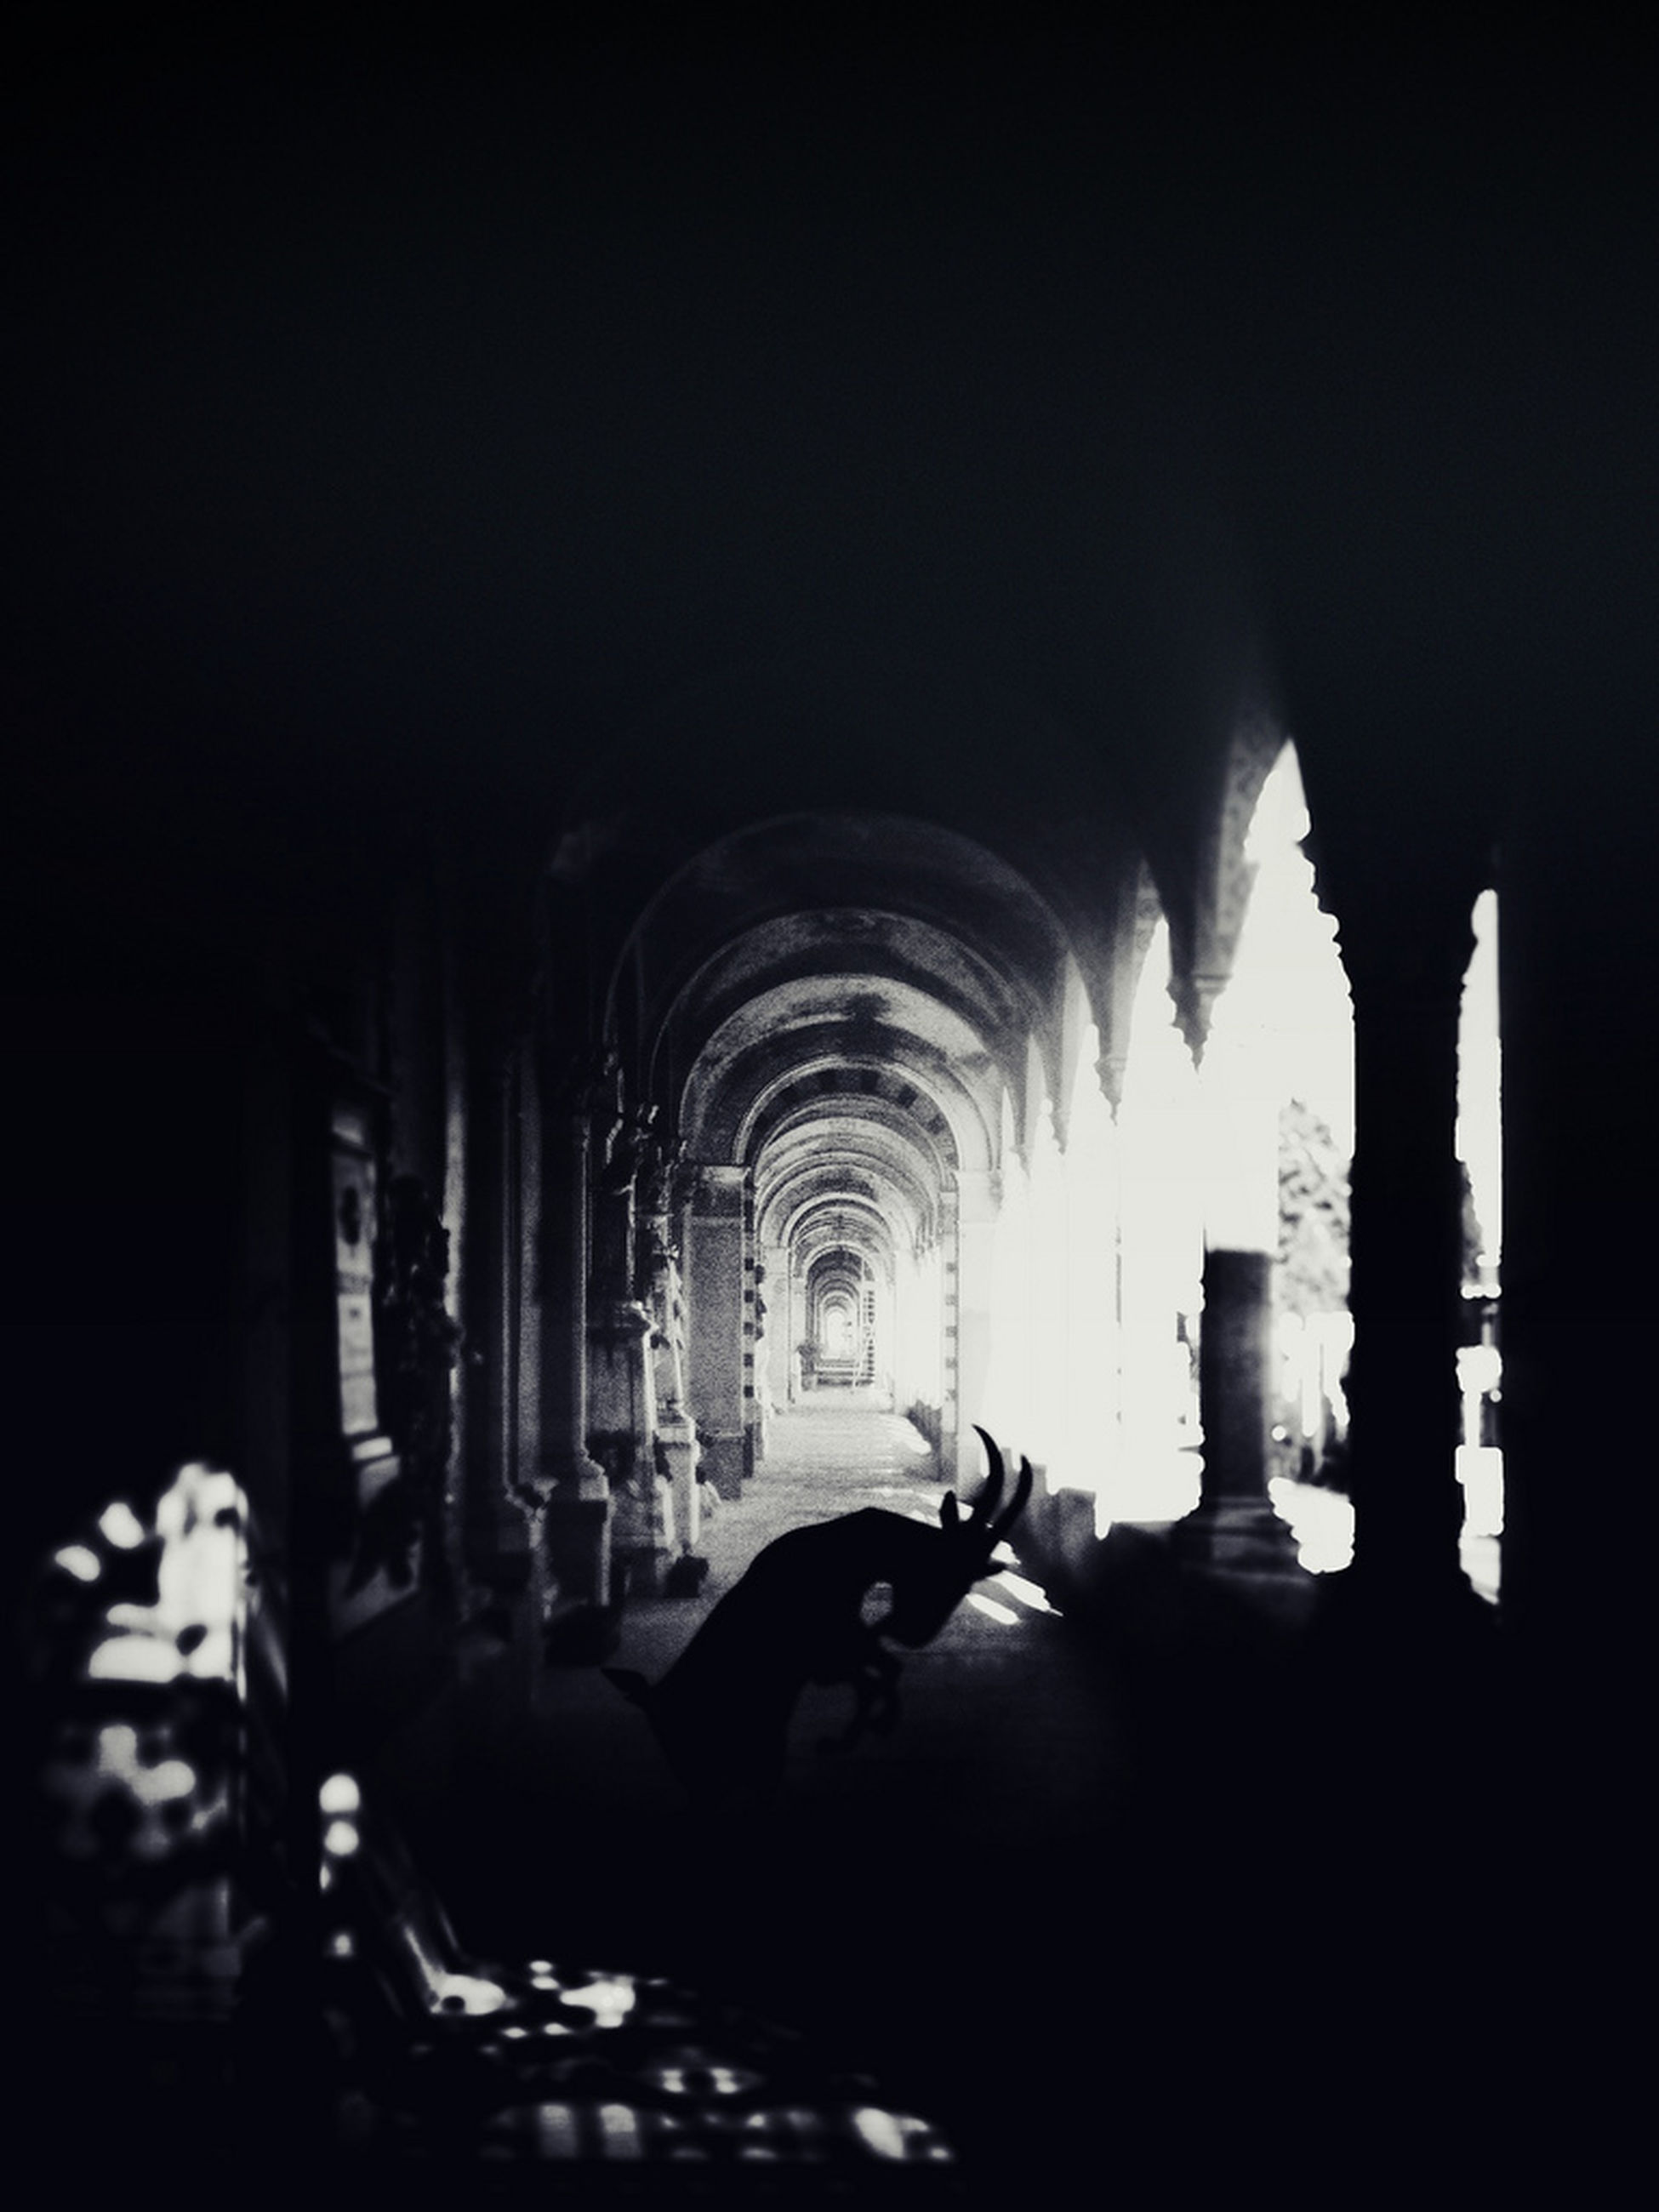 indoors, arch, men, architecture, lifestyles, built structure, person, walking, rear view, corridor, leisure activity, dark, architectural column, the way forward, unrecognizable person, illuminated, night